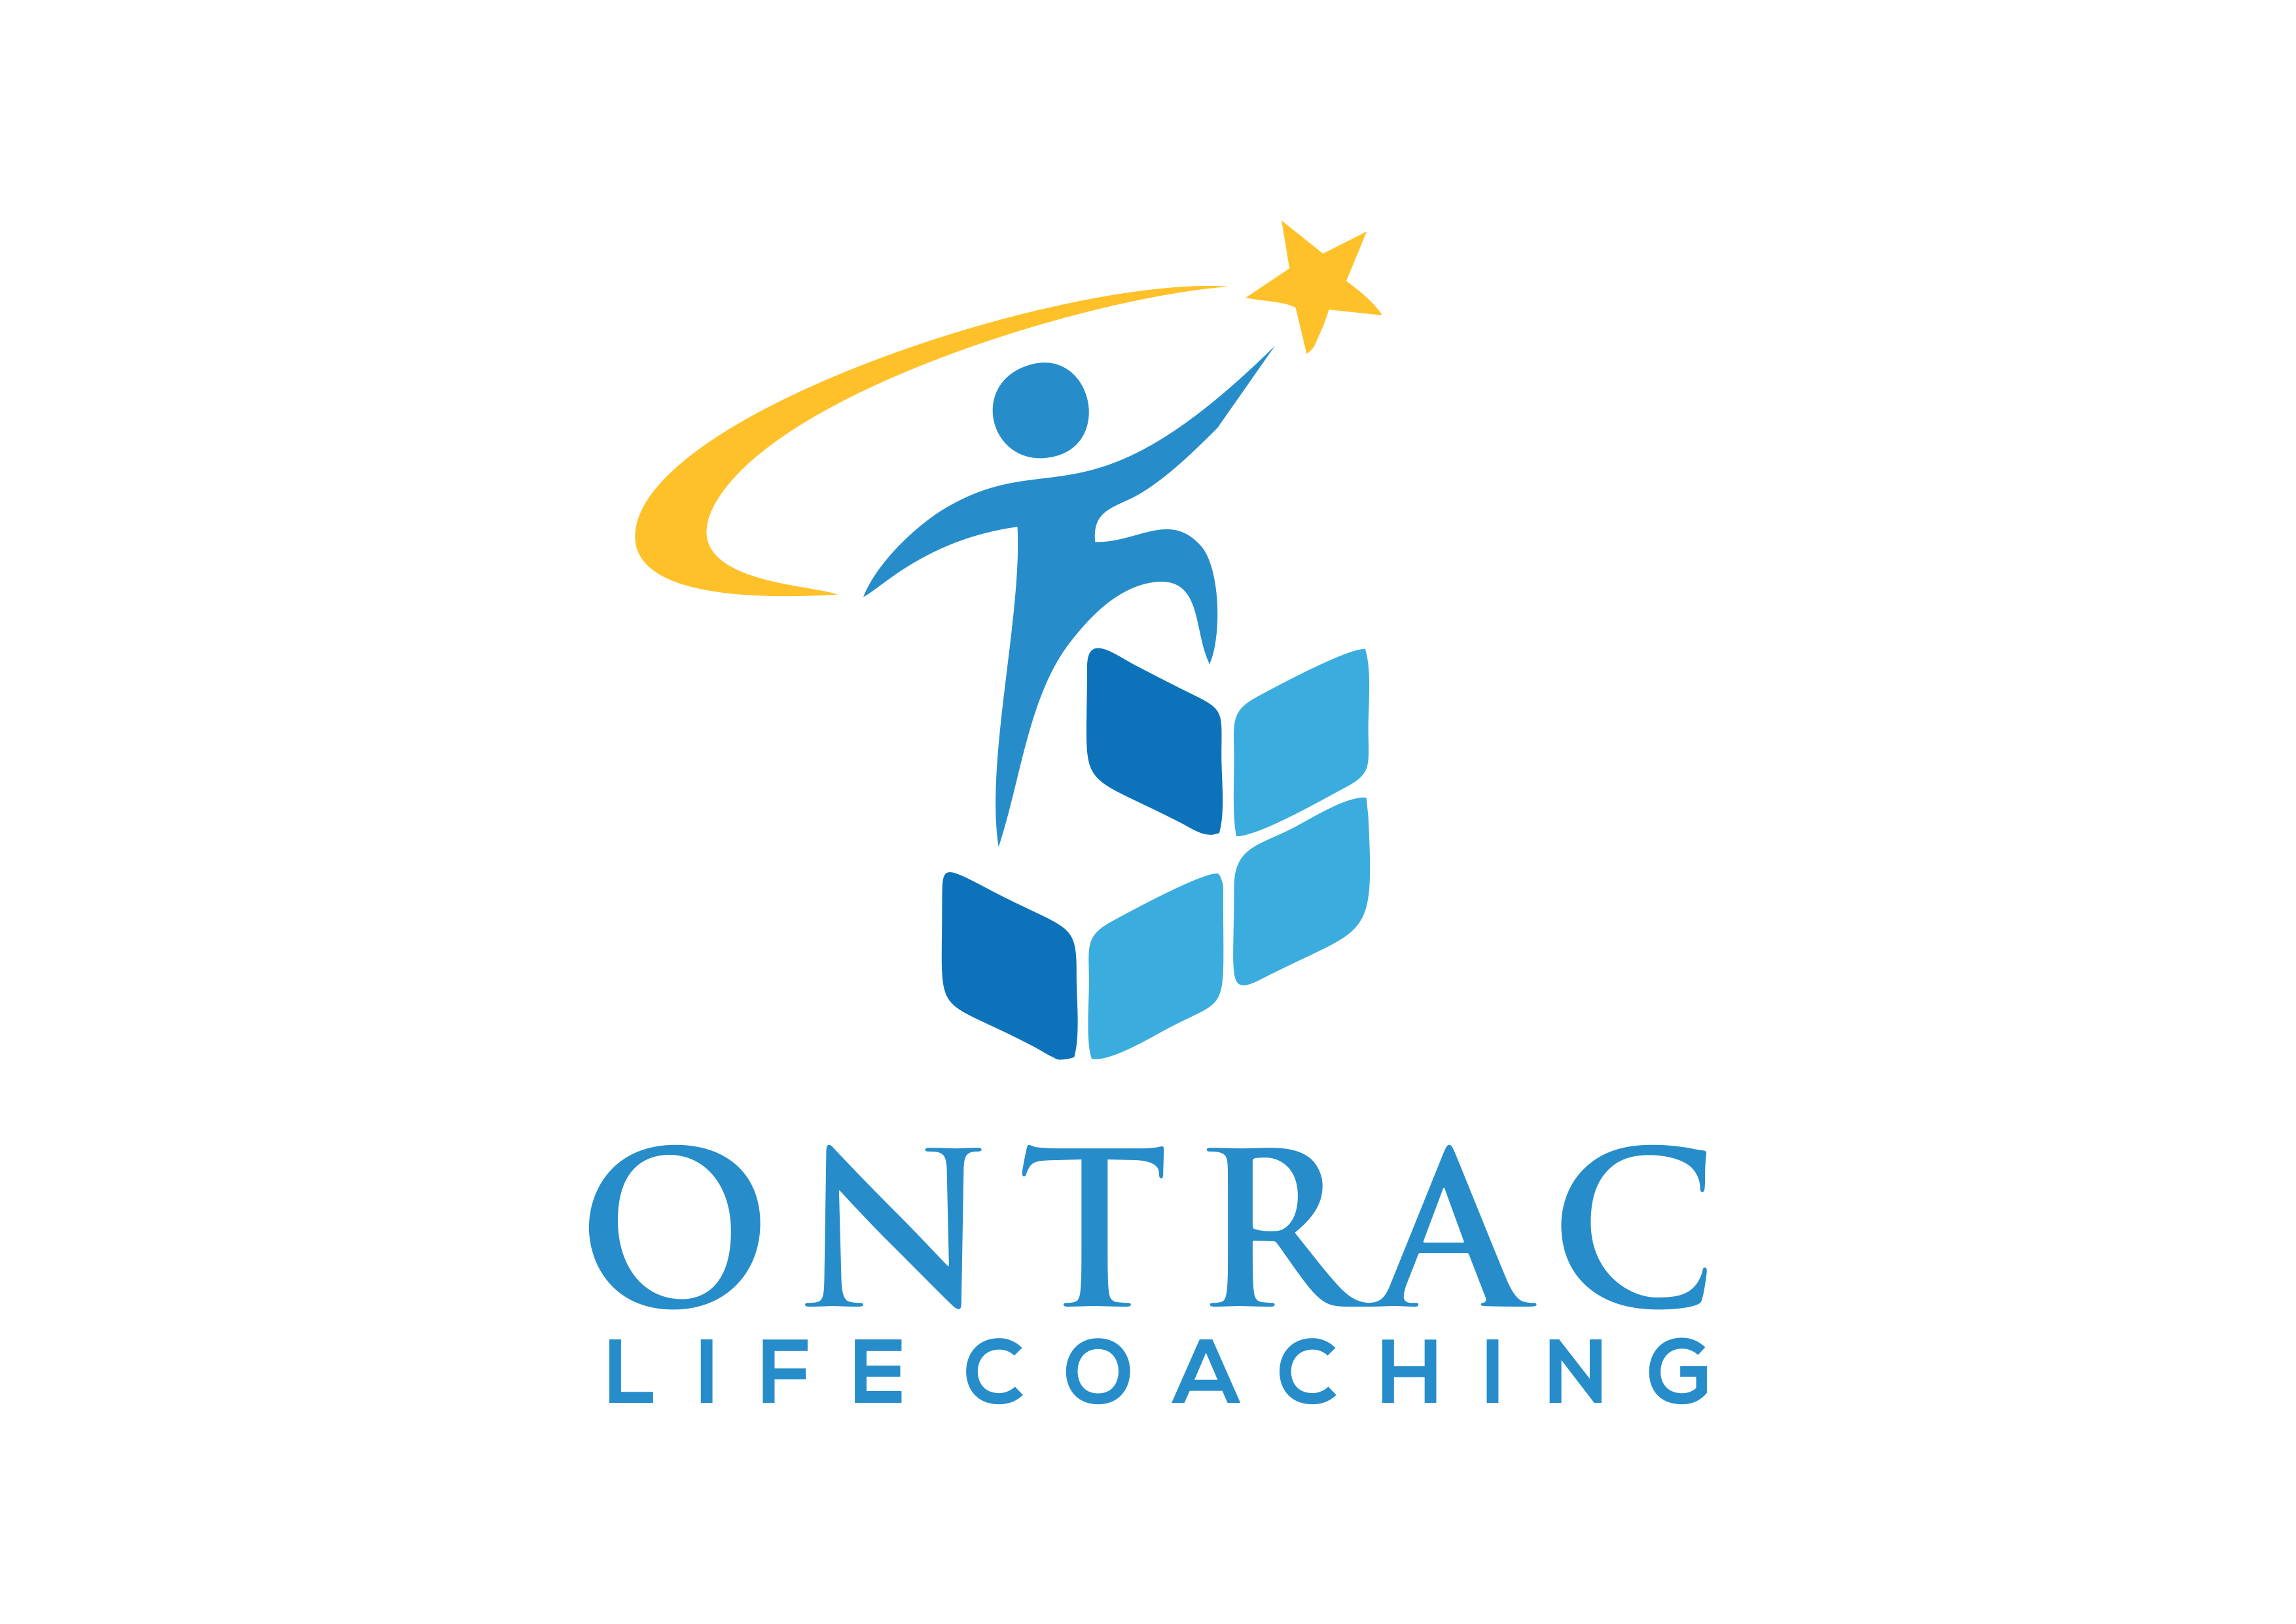 On Trac Life Coaching